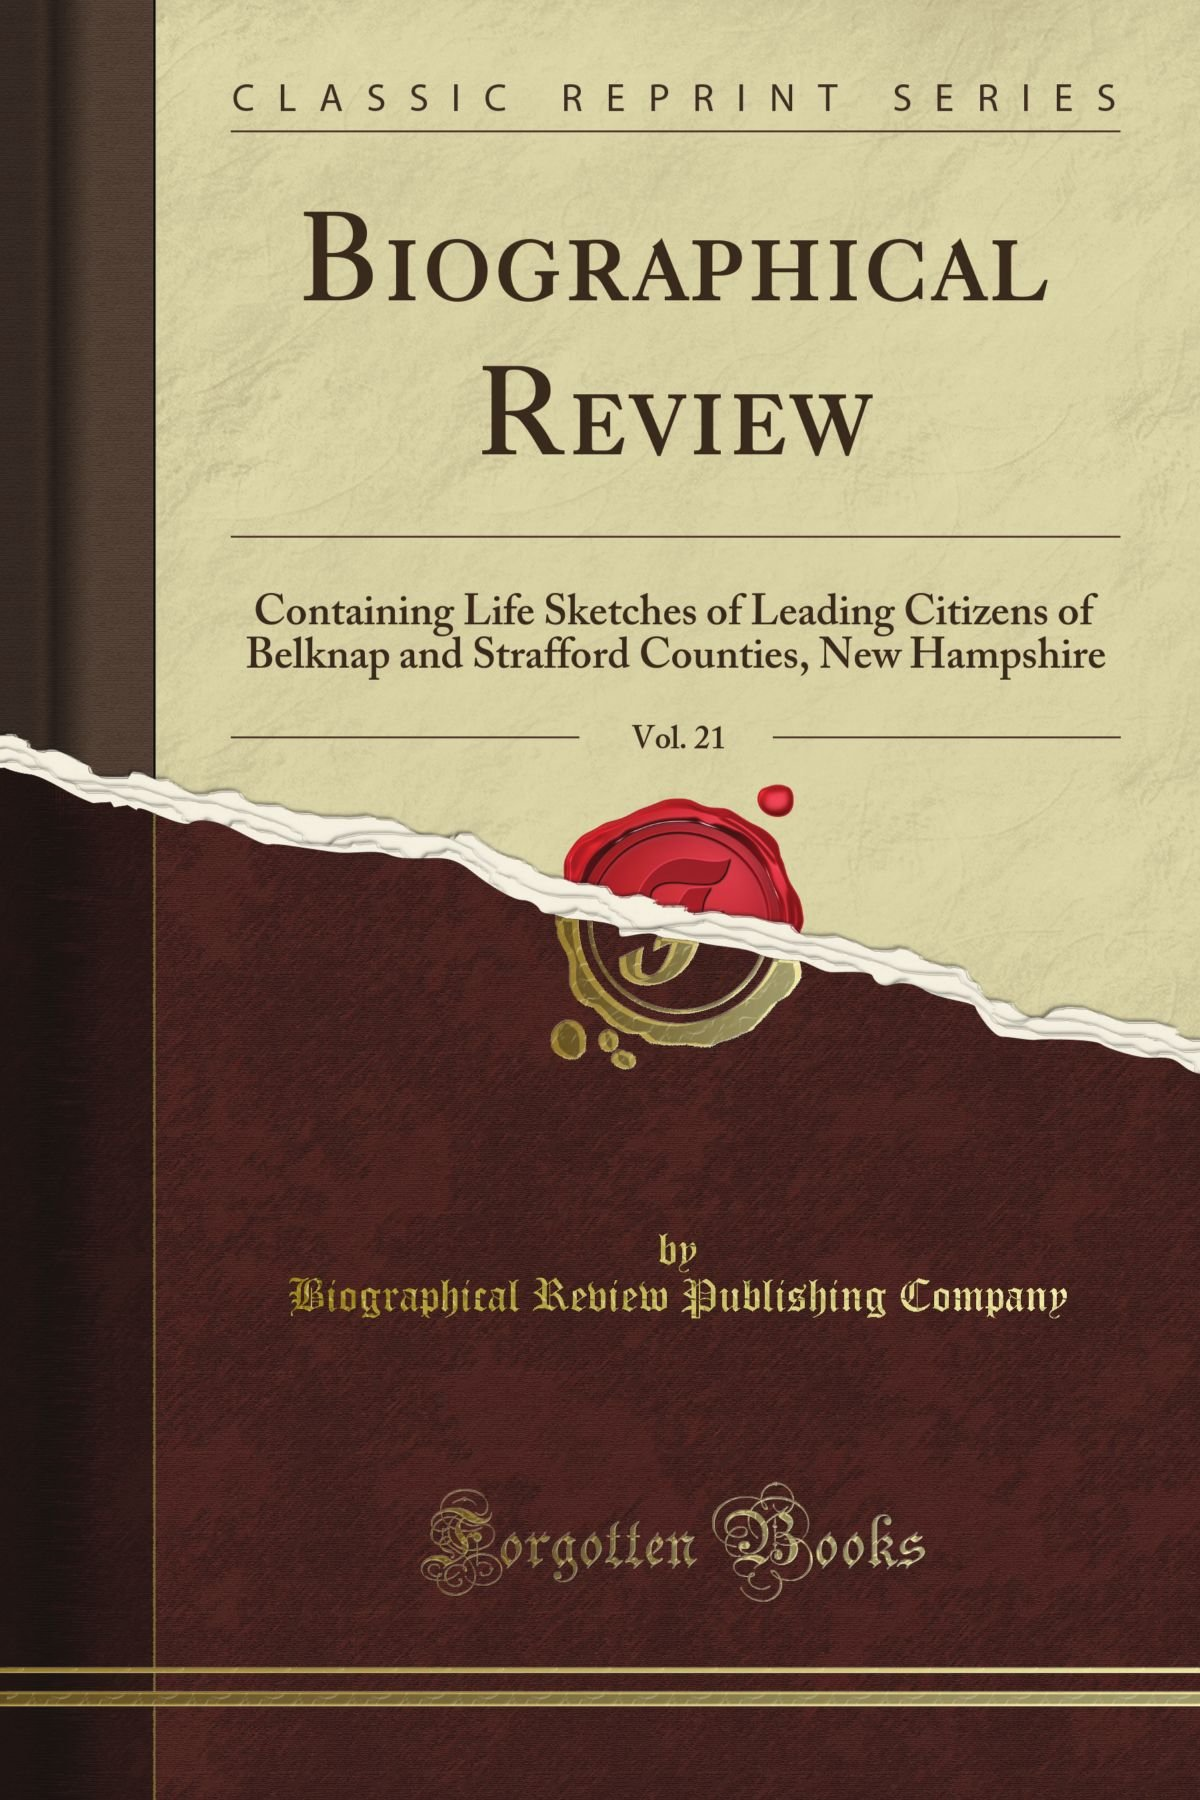 Biographical Review: Containing Life Sketches of Leading Citizens of Belknap and Strafford Counties, New Hampshire, Vol. 21 (Classic Reprint)